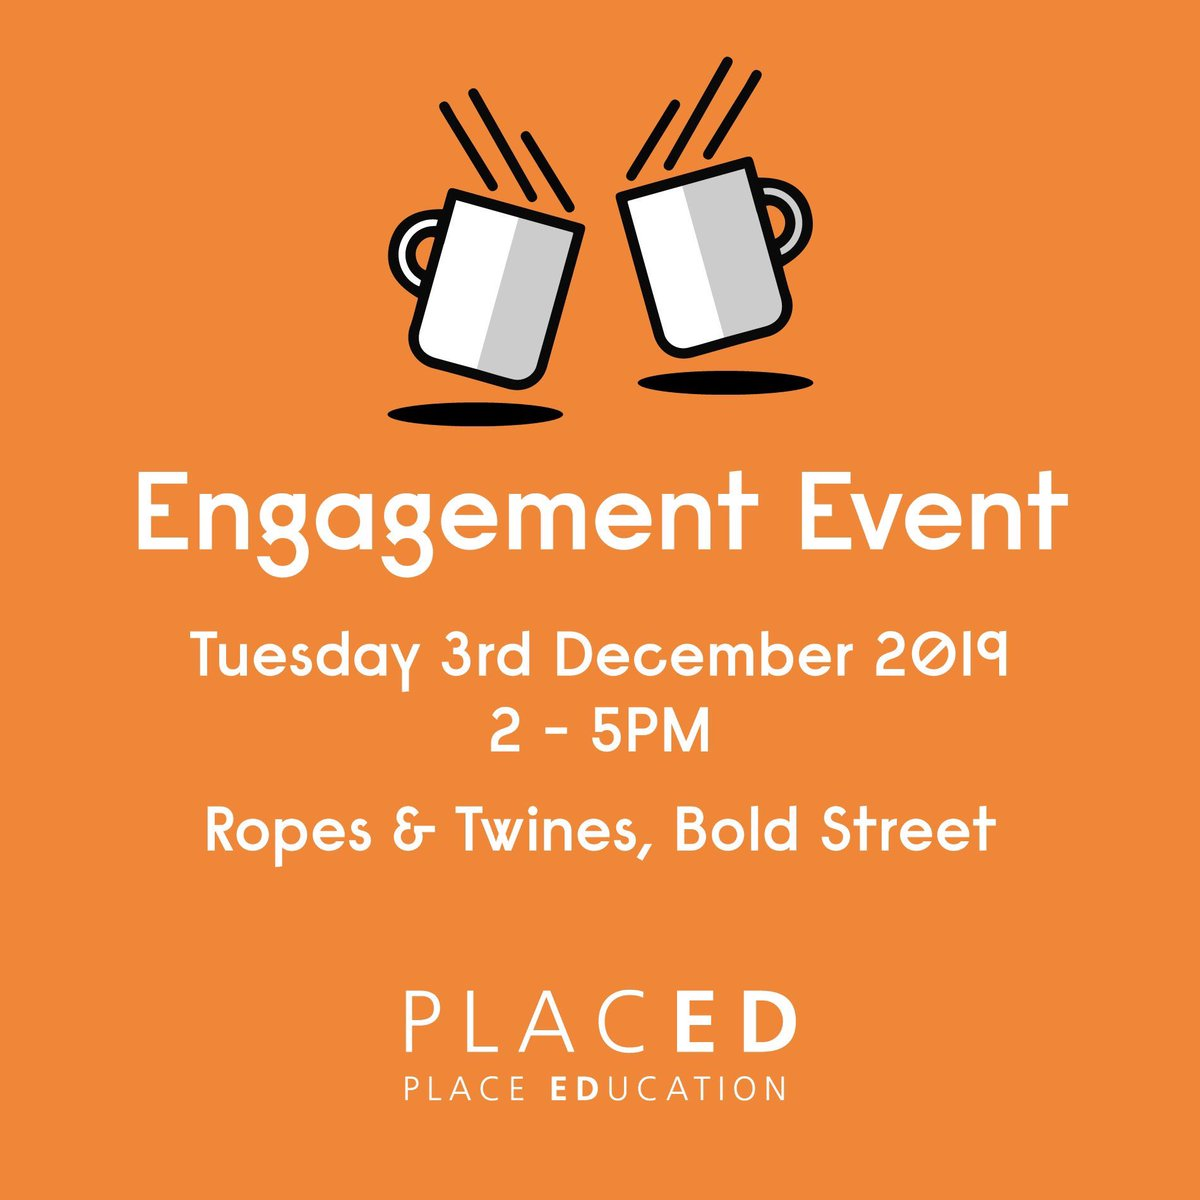 TUESDAY! Join us, ahead of our networking event, to share your views on the SDS for your area. All info collected on the day will be directly fed back to @LpoolCityRegion & will help shape the final SDS. So come in! The team will grab you a coffee & gather your views! #PLACEDpro